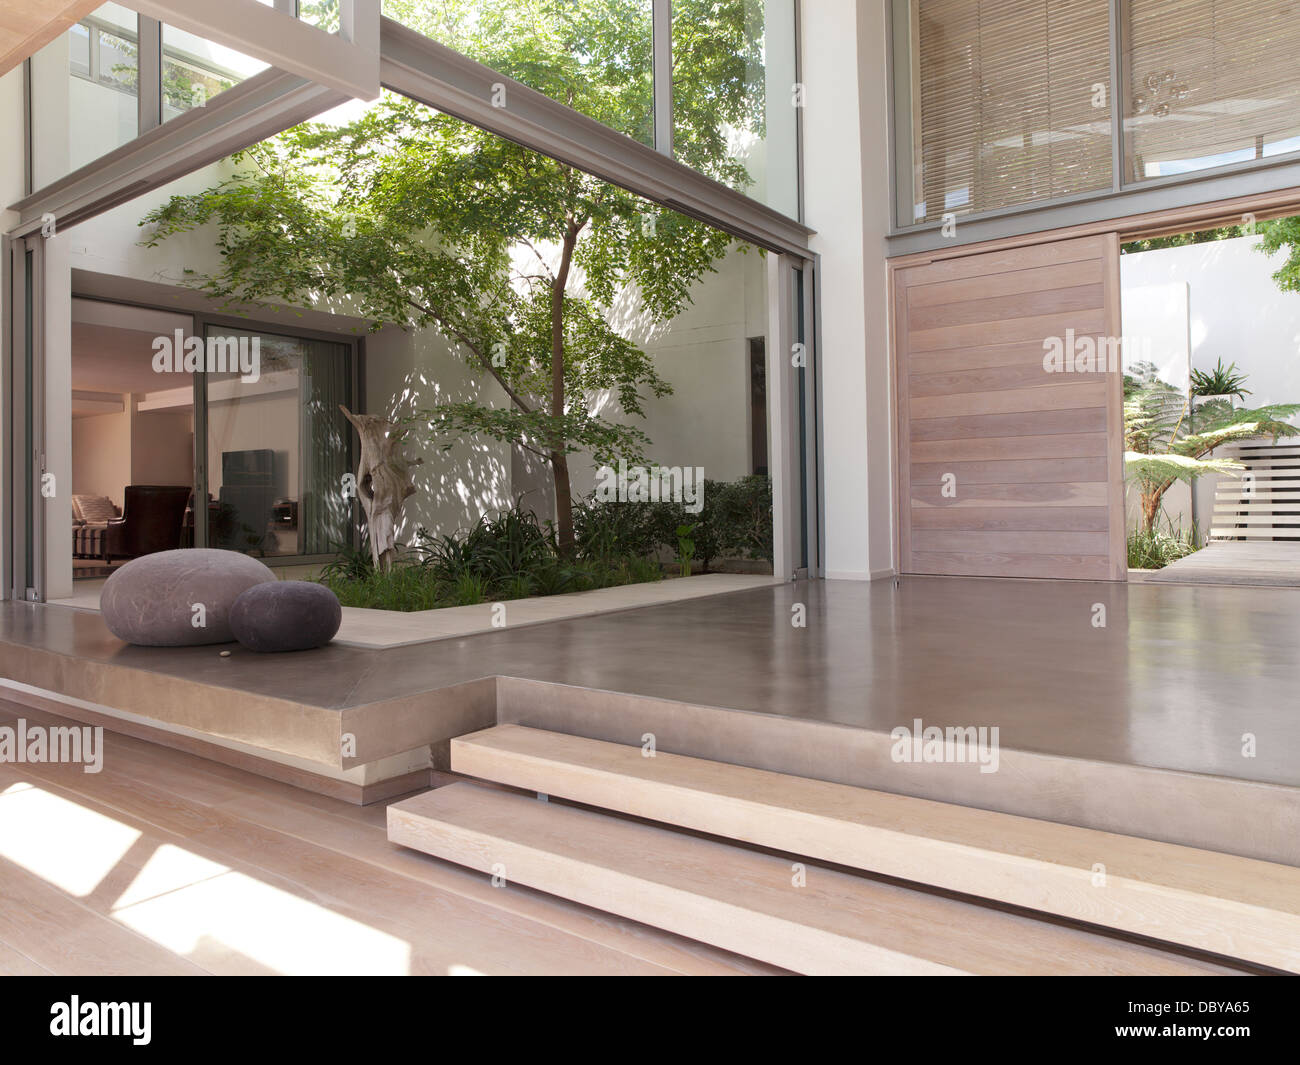 Modern Foyer Images : Modern foyer with courtyard stock photo  alamy